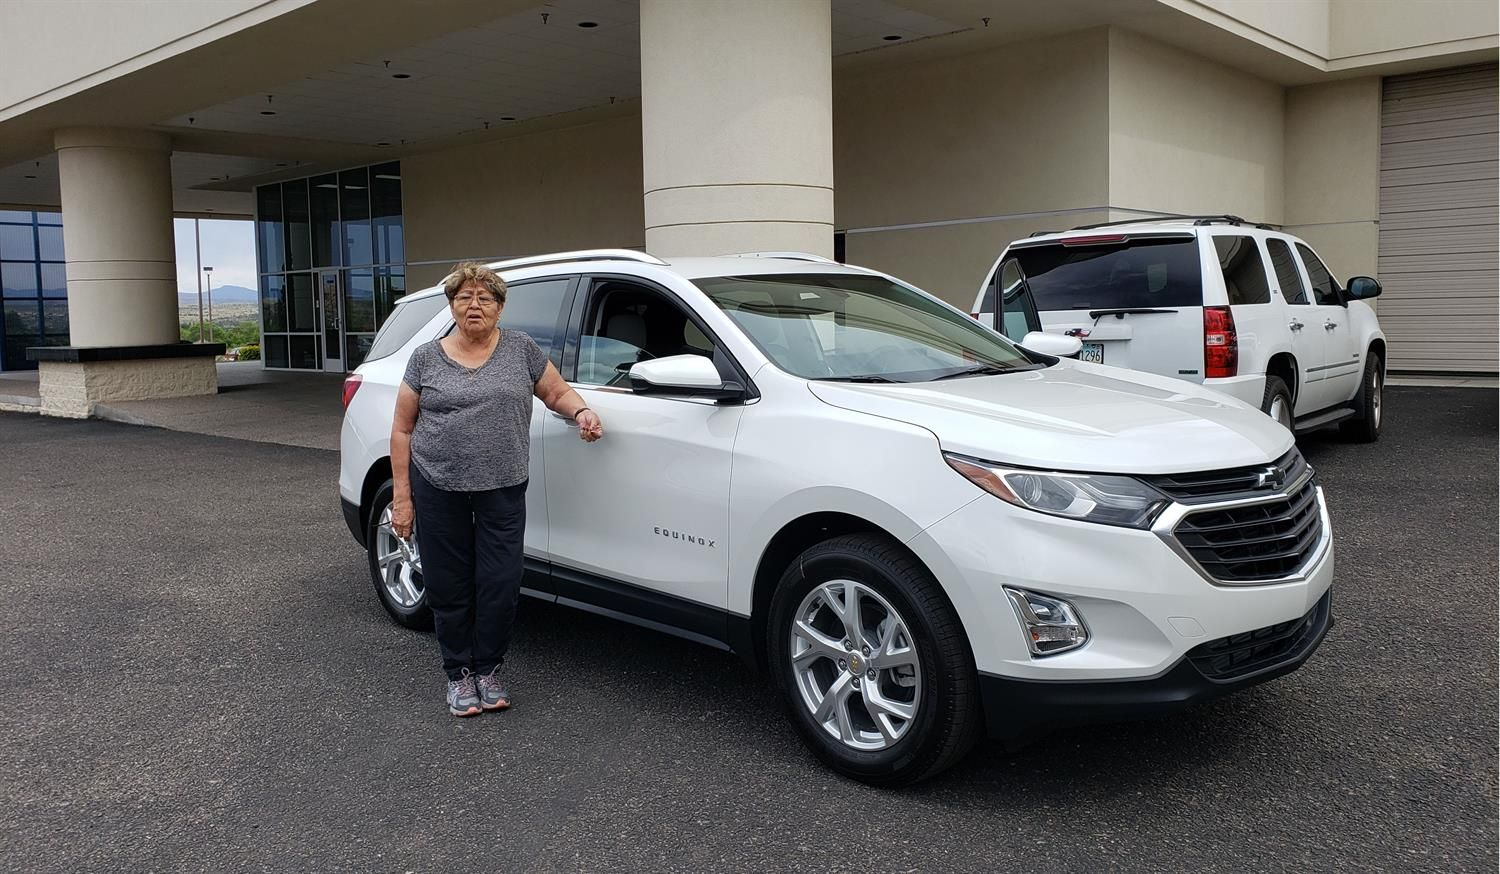 Thank You Kathleen For The Opportunity To Help You With Your New 2019 Chevrolet Equinox All The Best Larry Green Chevrole Chevrolet Equinox Chevrolet Larry